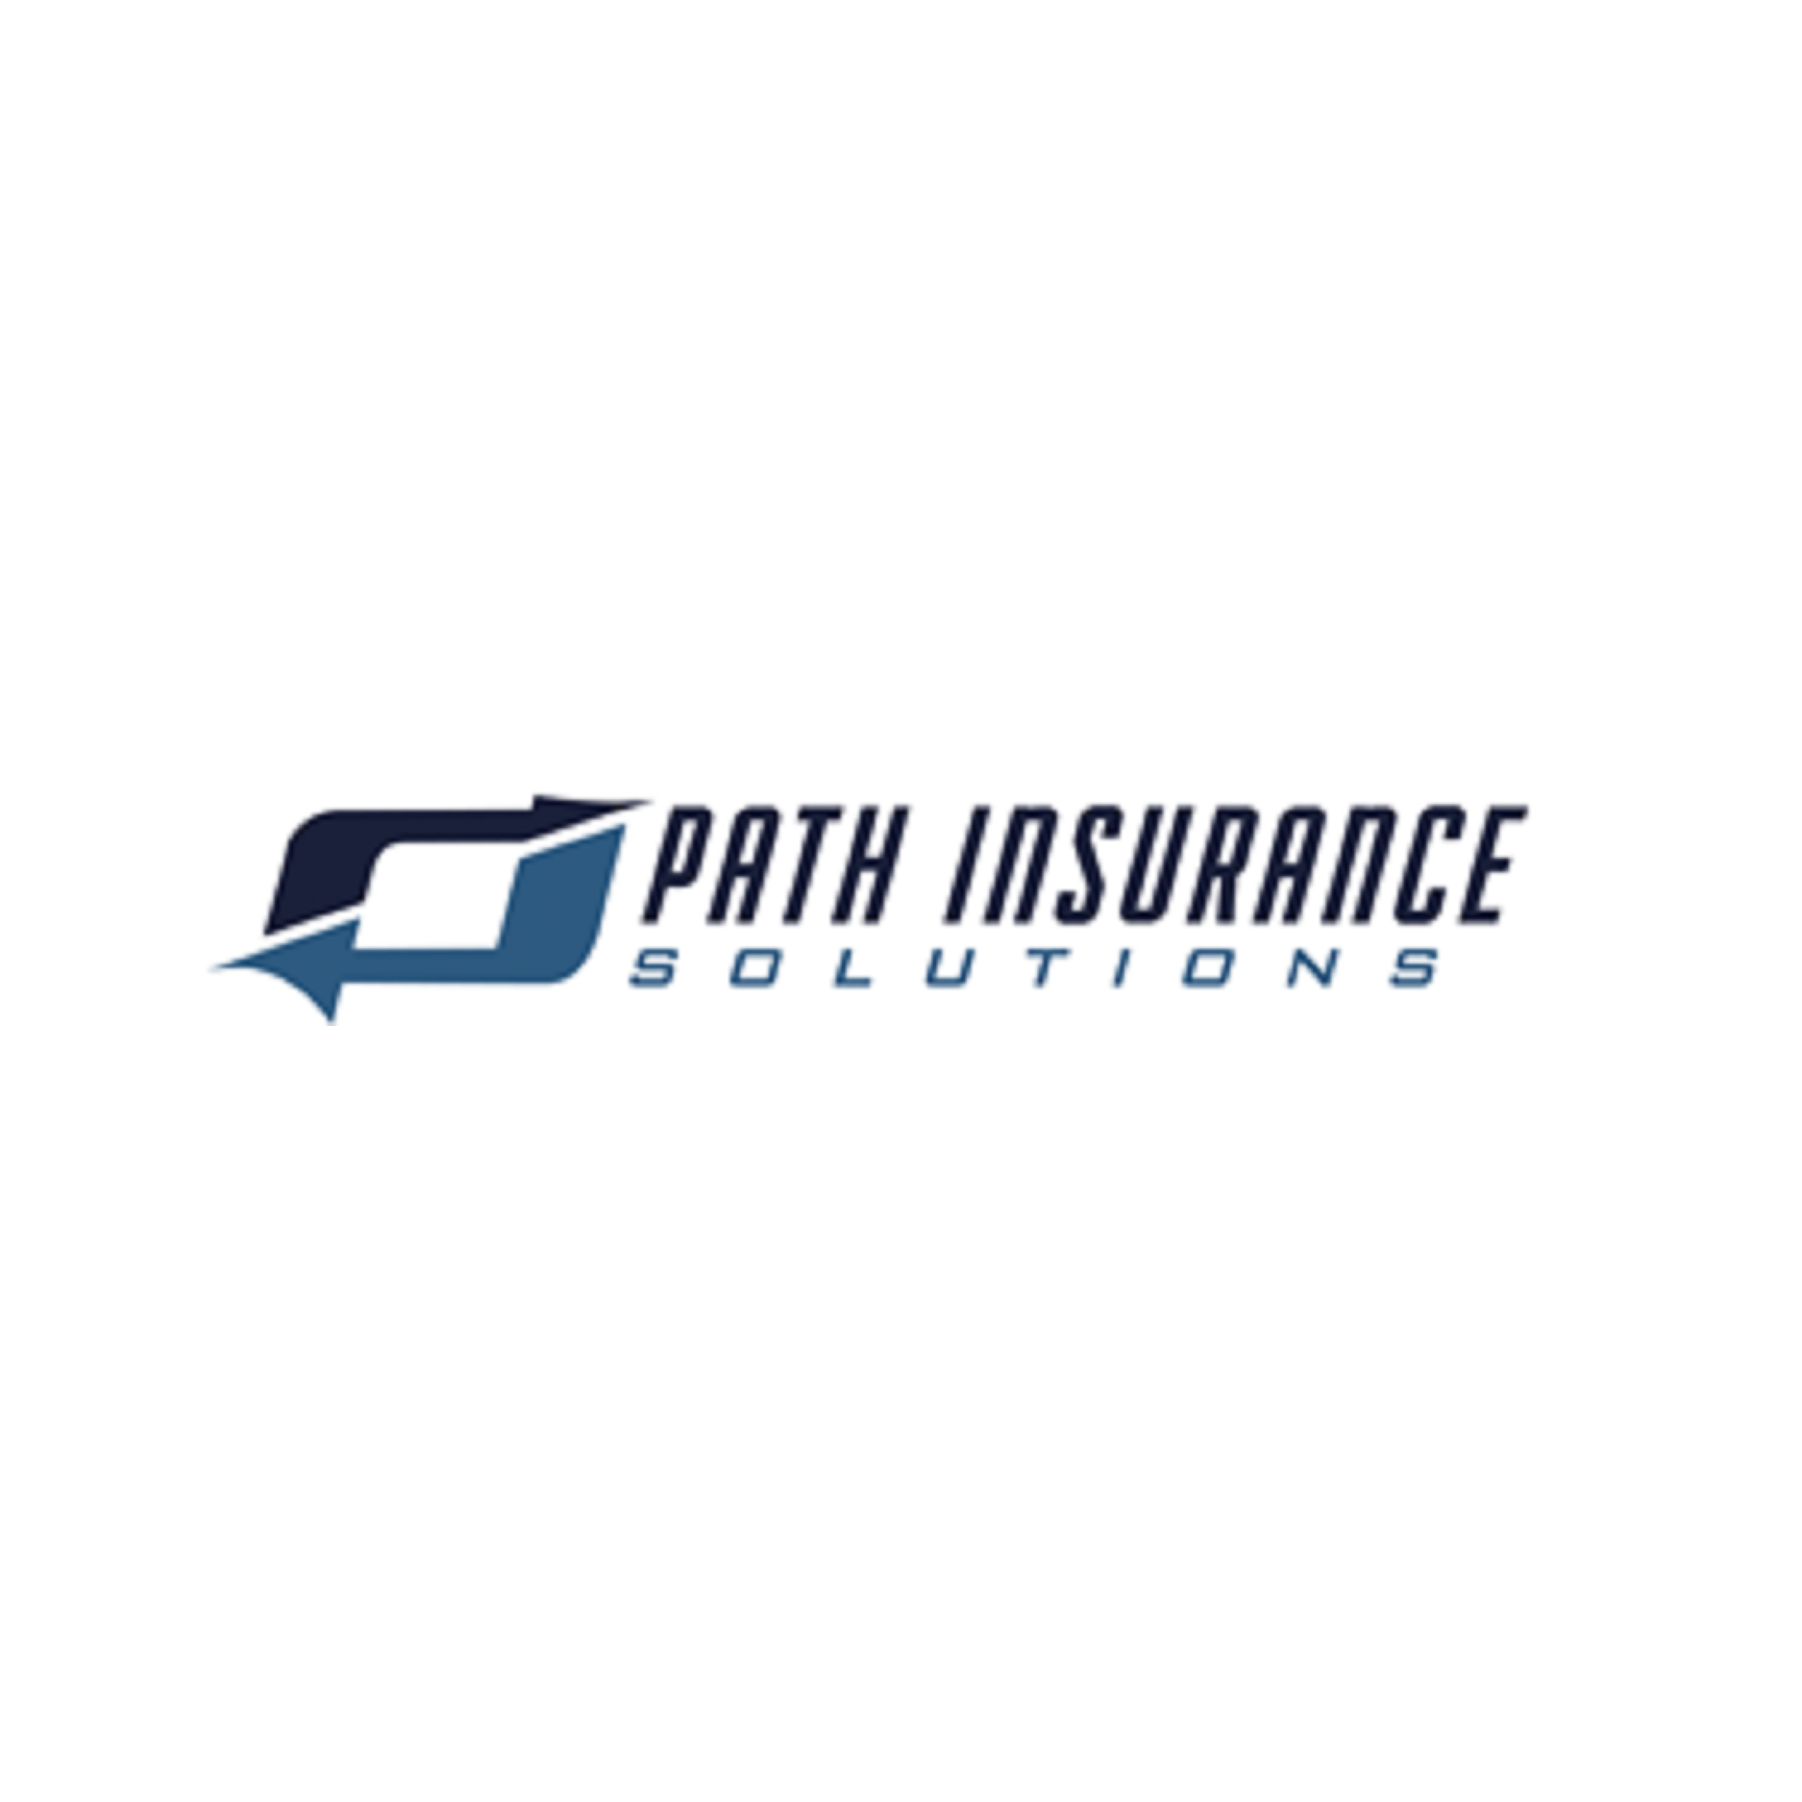 Path Insurance Solutions